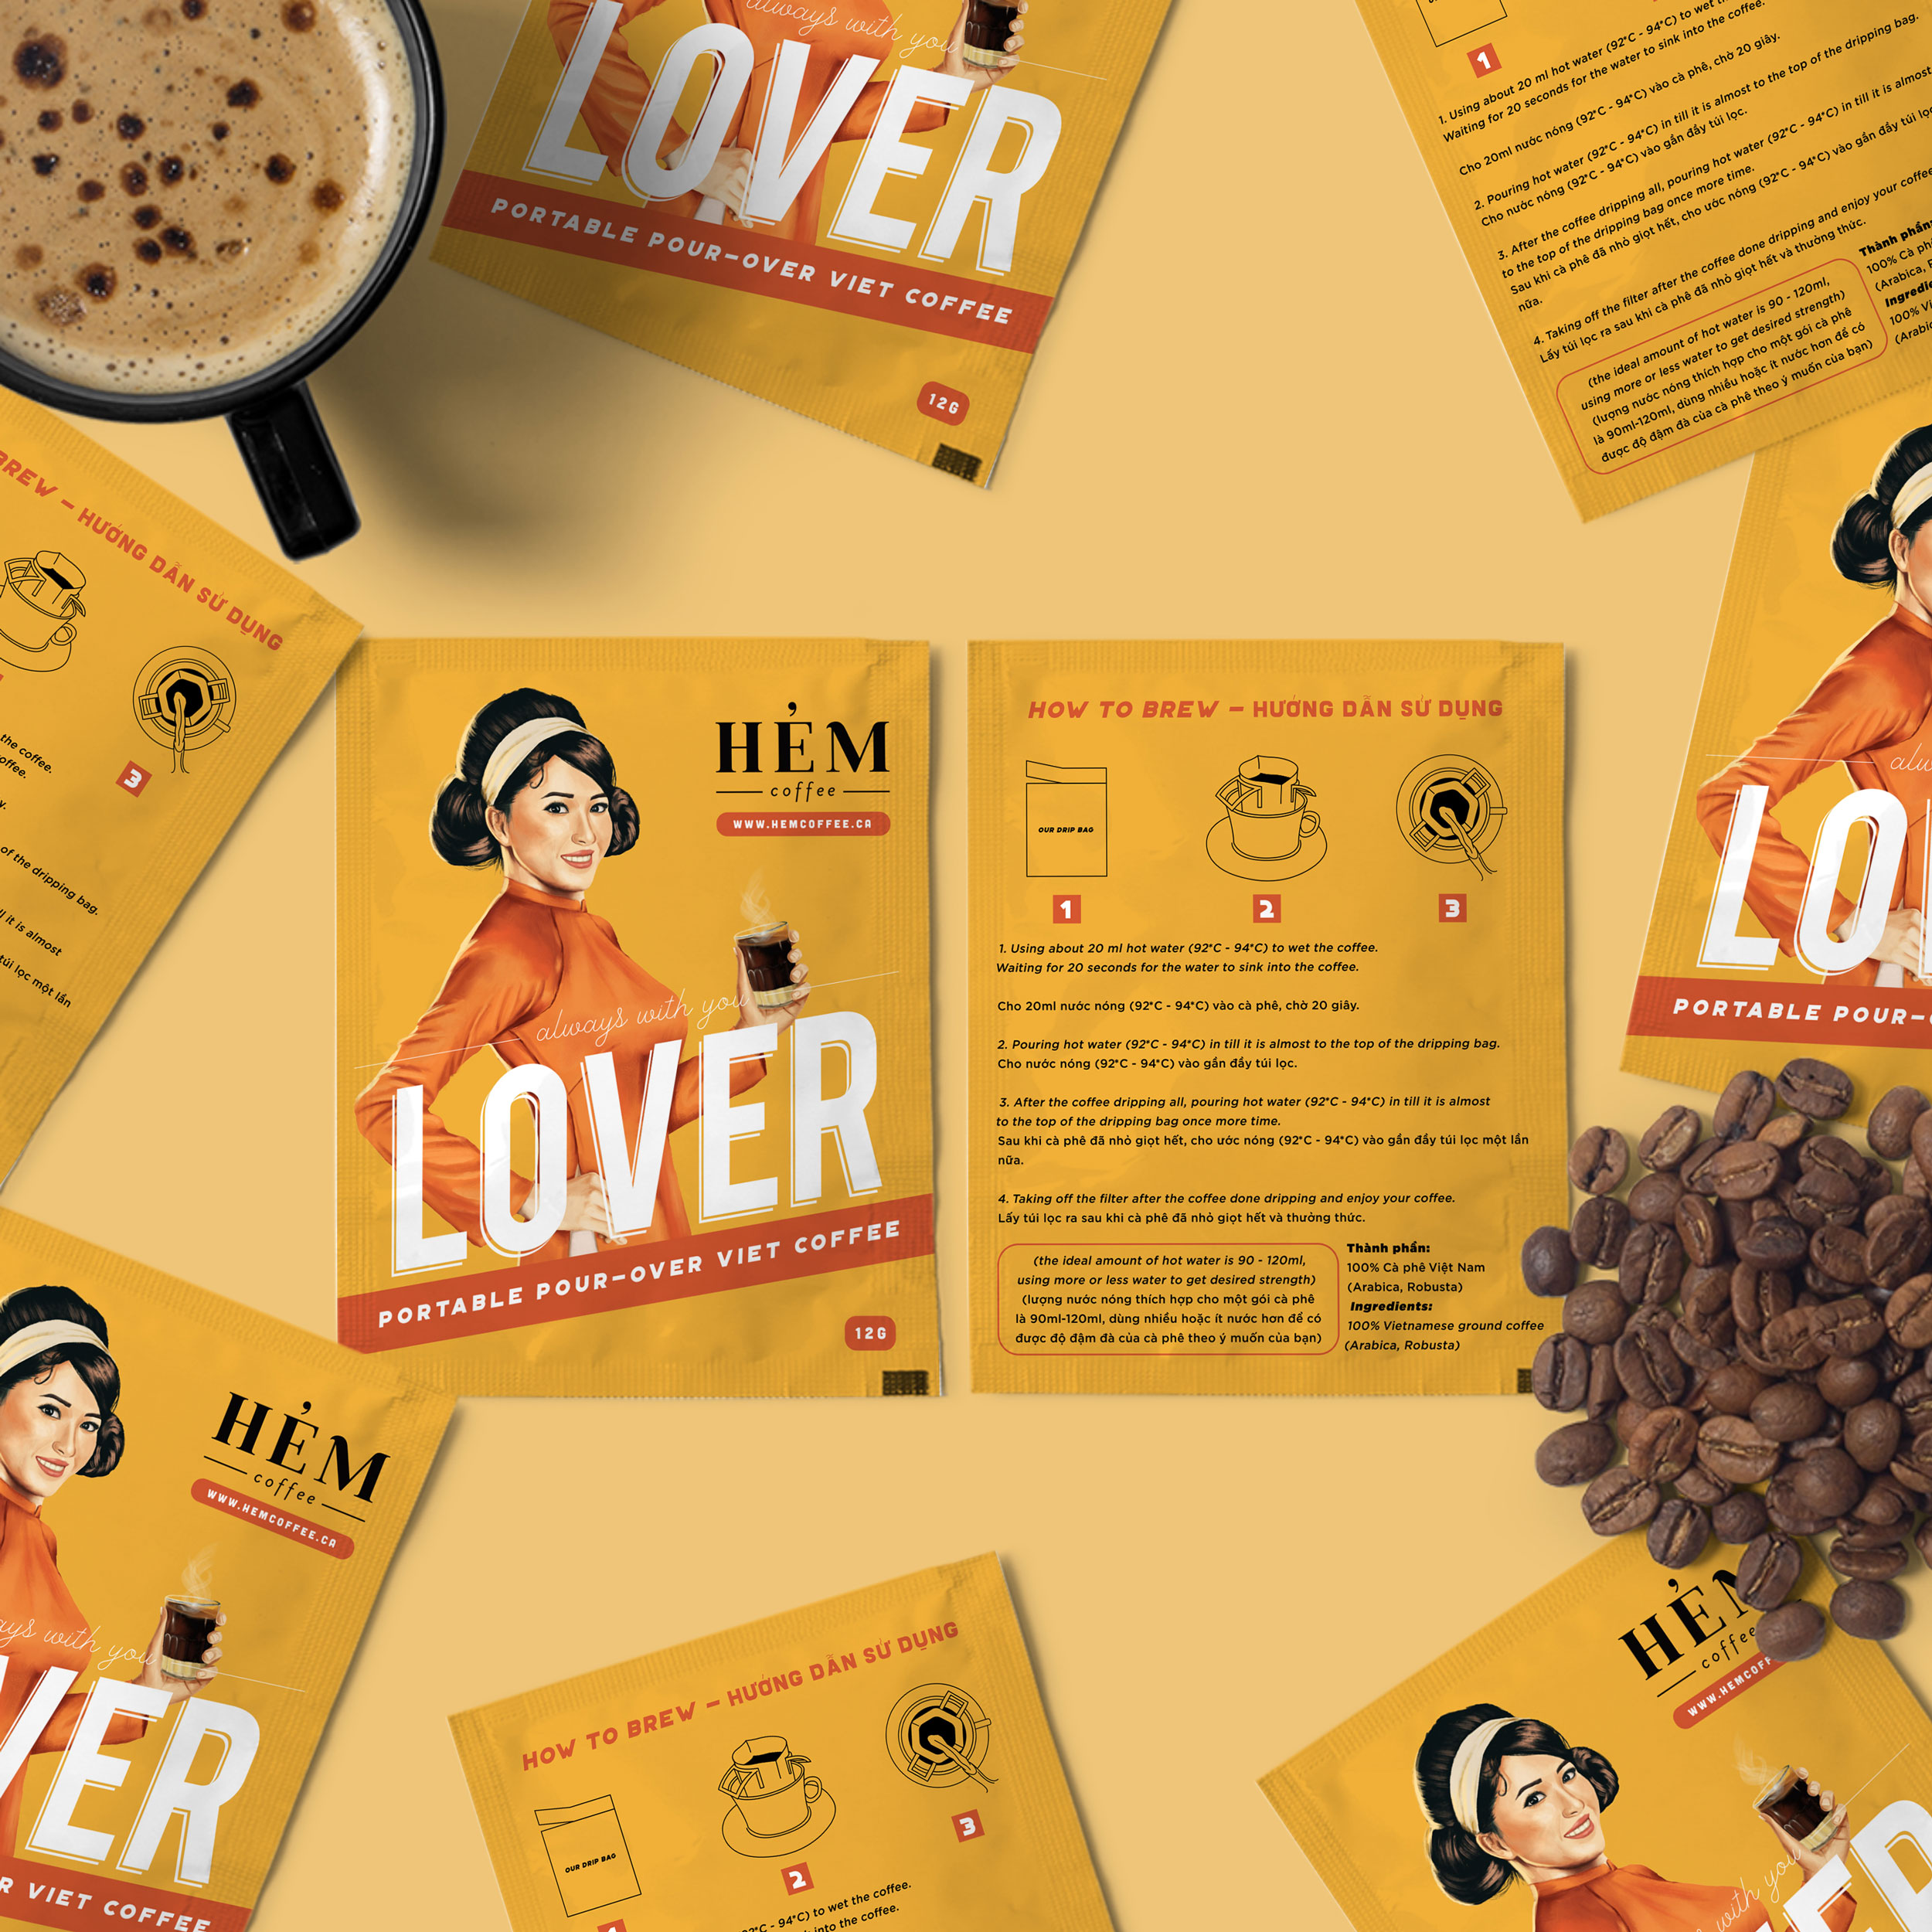 Lover Portable Pour-Over Vietnamese Coffee Packaging Design